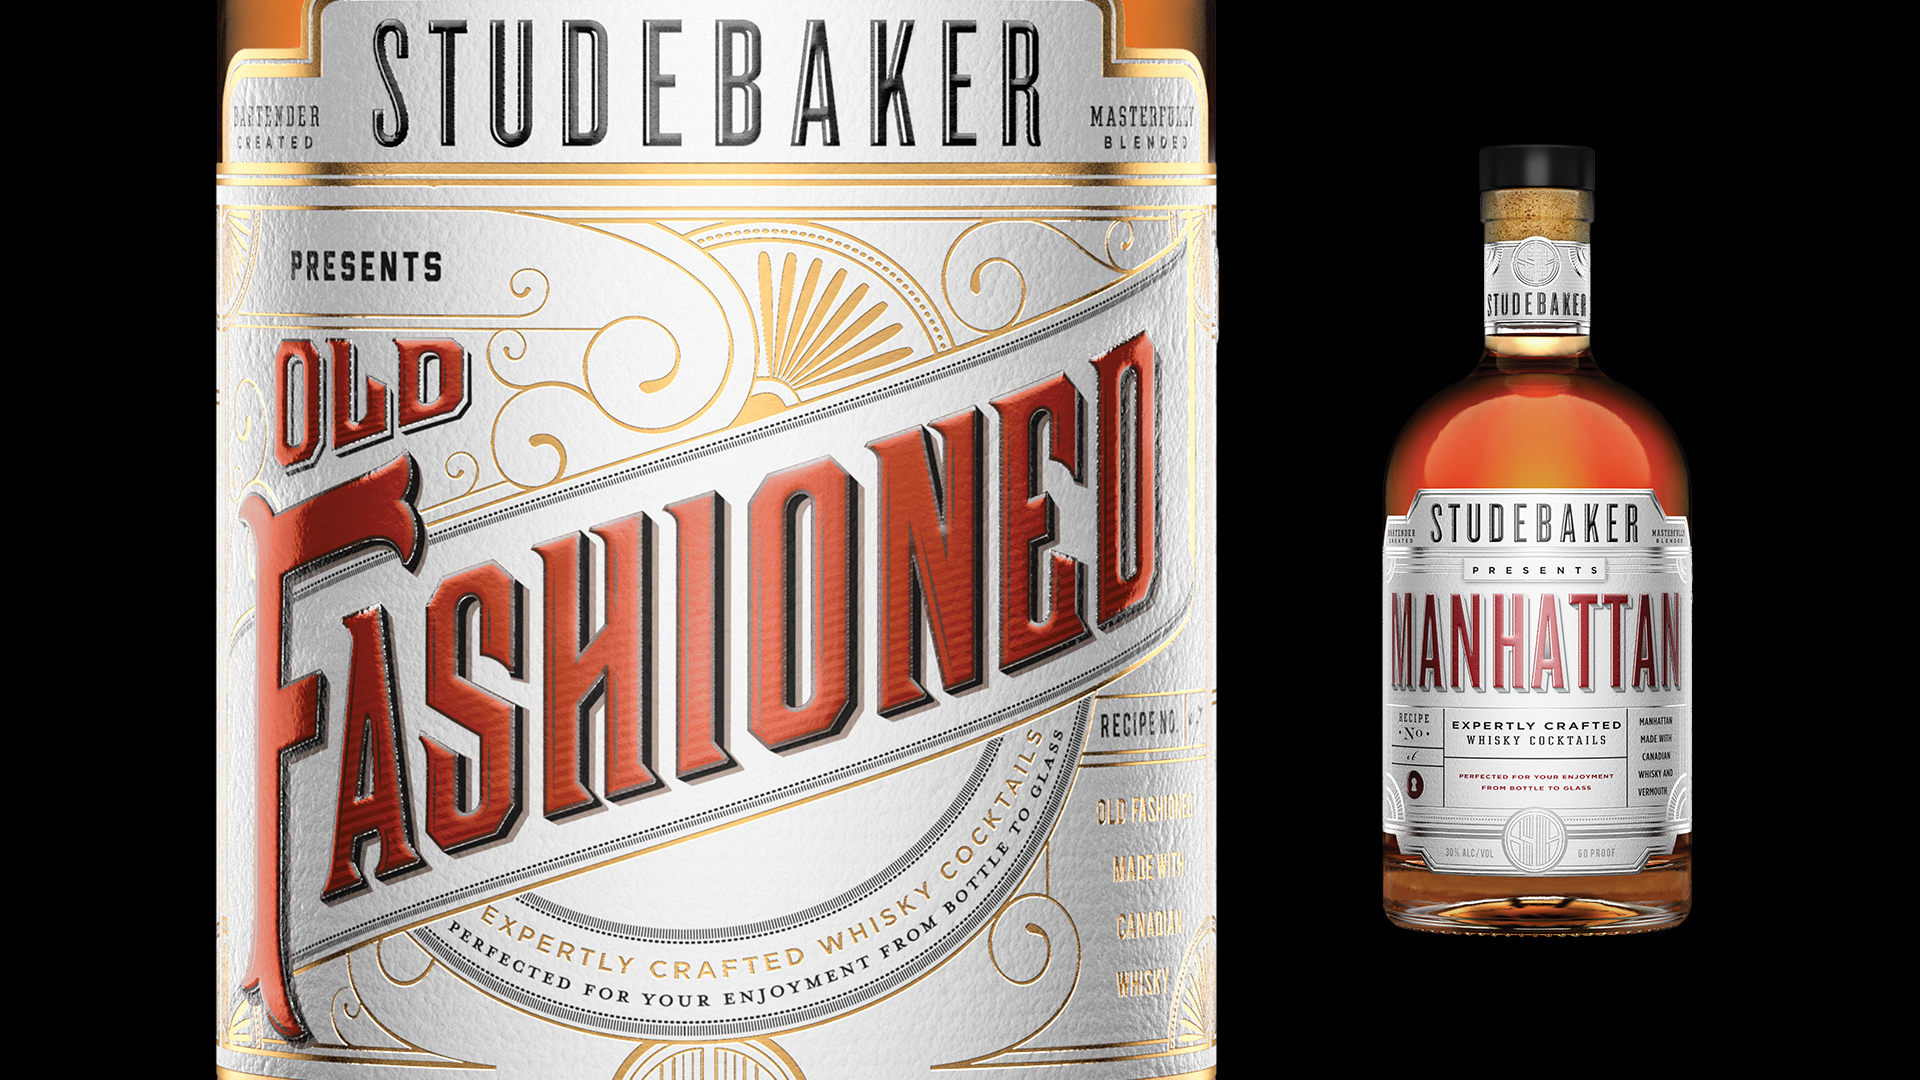 Studebaker Whisky Cocktails Old Fashioned Bottle Render